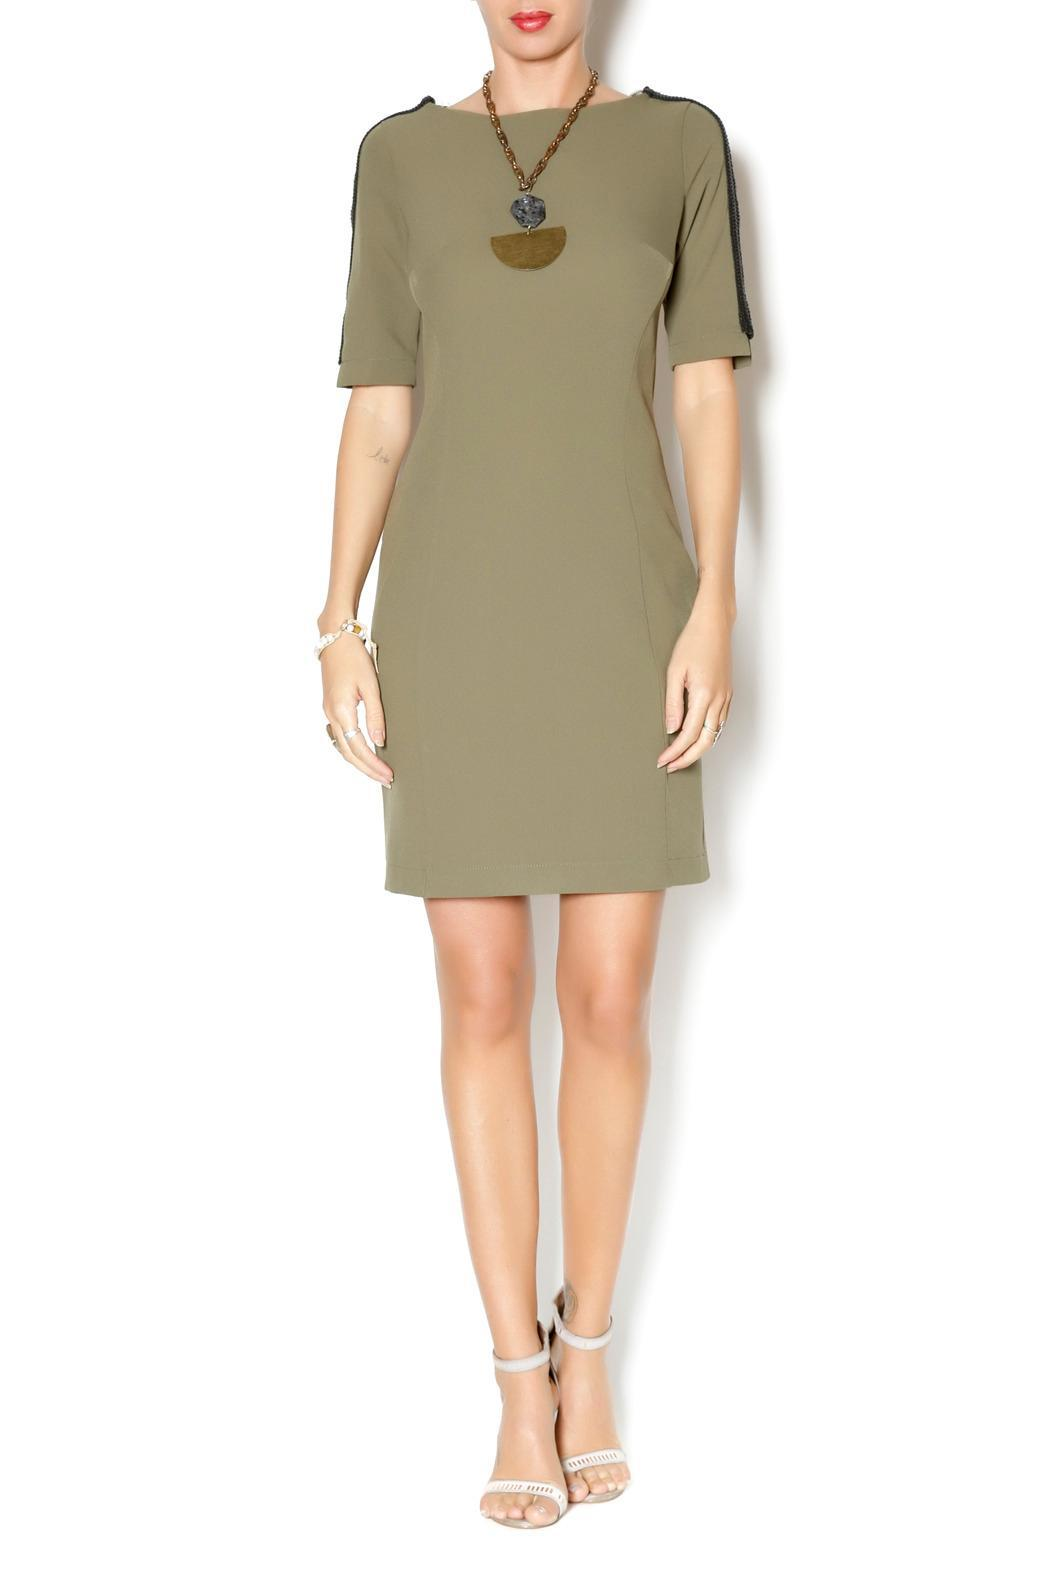 Joymiss Short Sleeve Fitted-Dress - Front Full Image